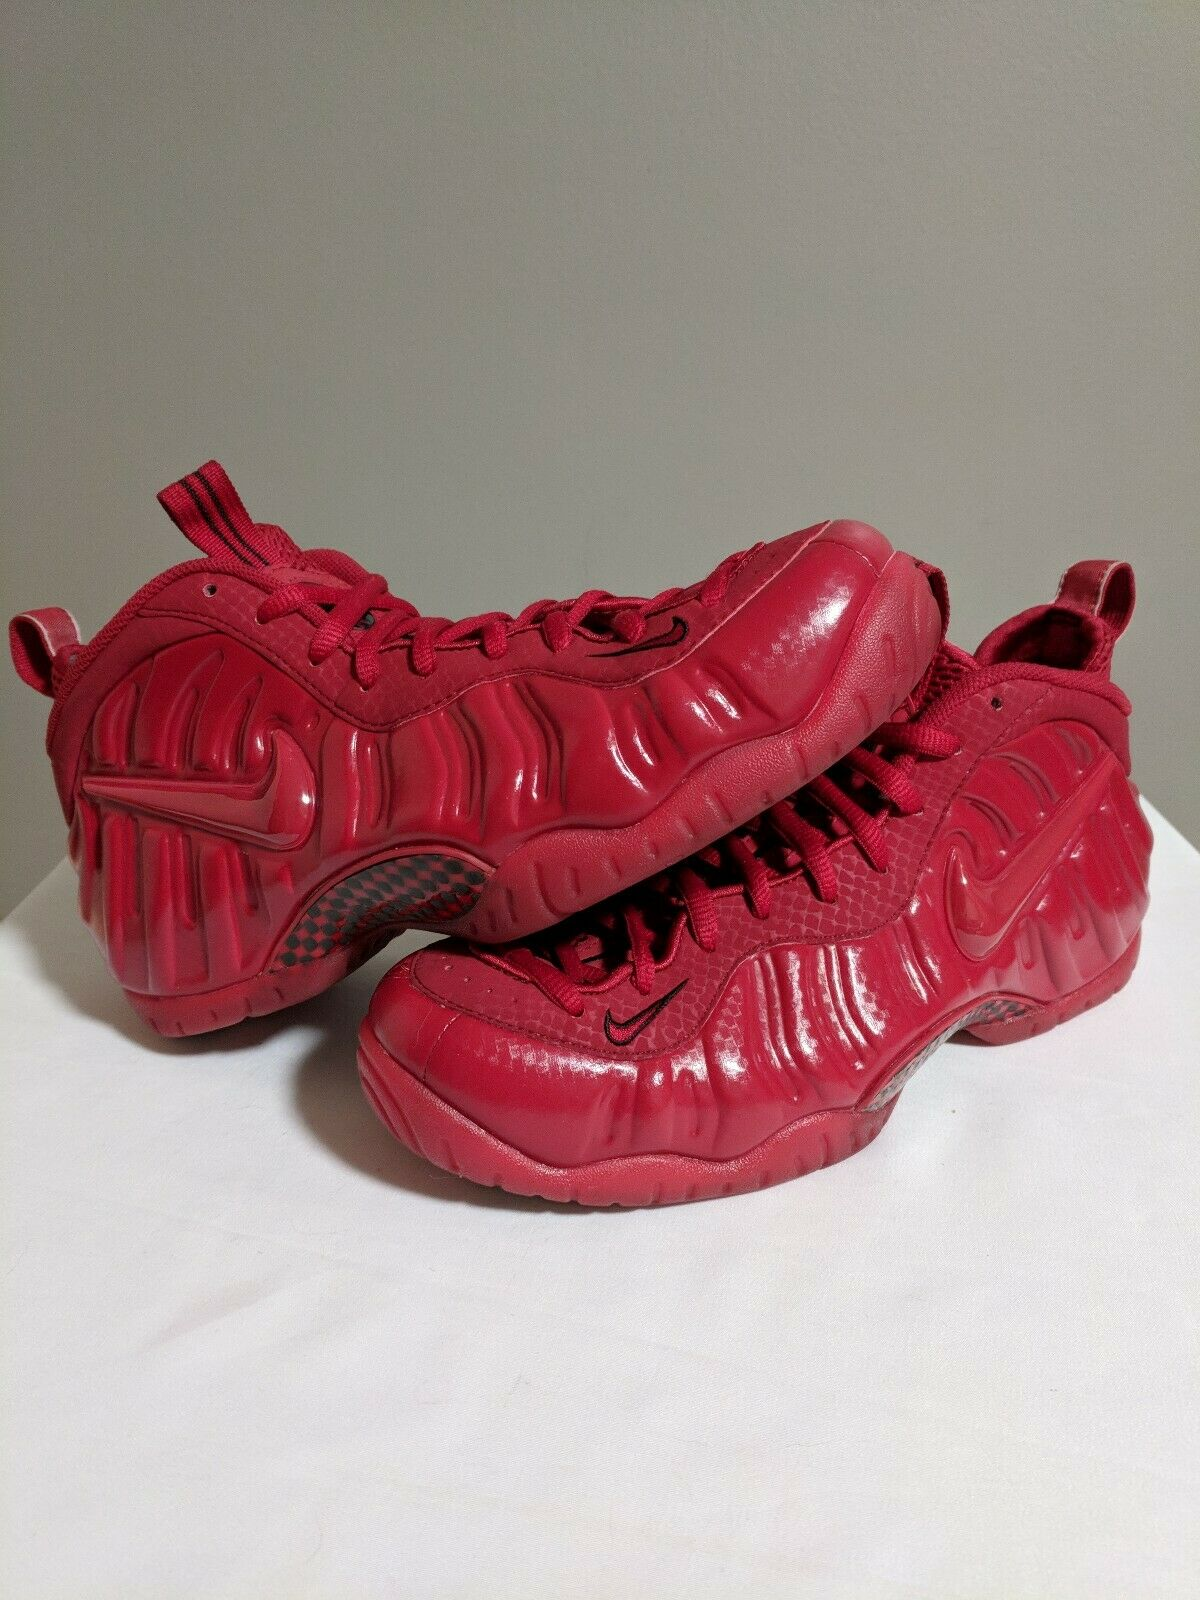 Nike Air Foamposite Pro Gym Red October black Men's Size 8.5 bred free shipping